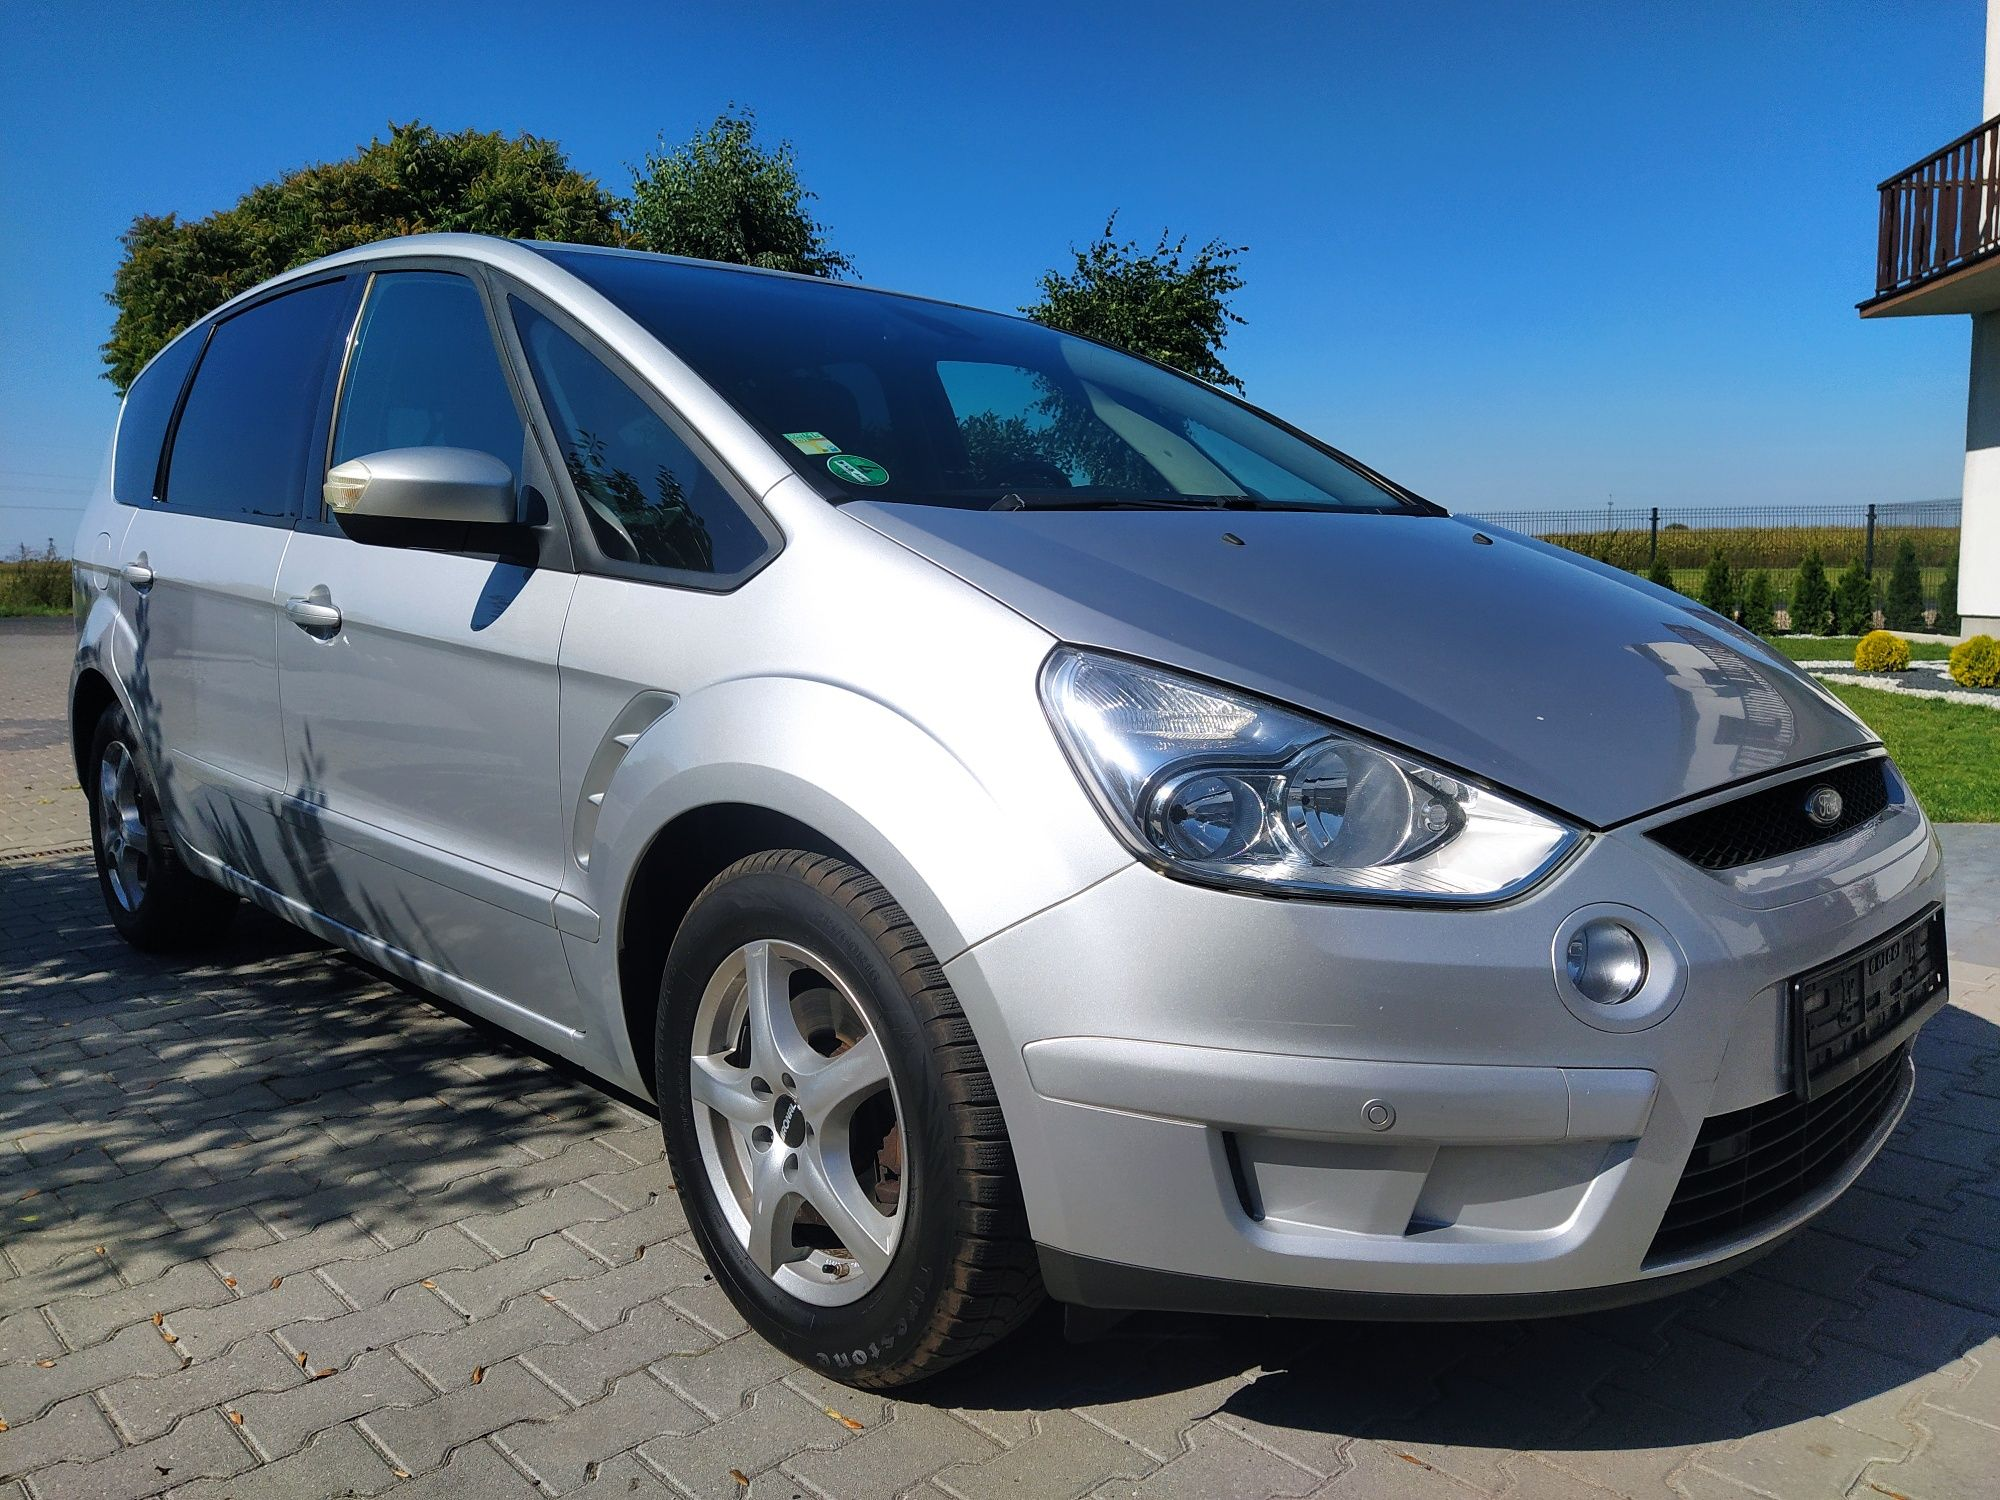 Ford S Max 2.0 TDCI Klima 7 osobowy Navi Android